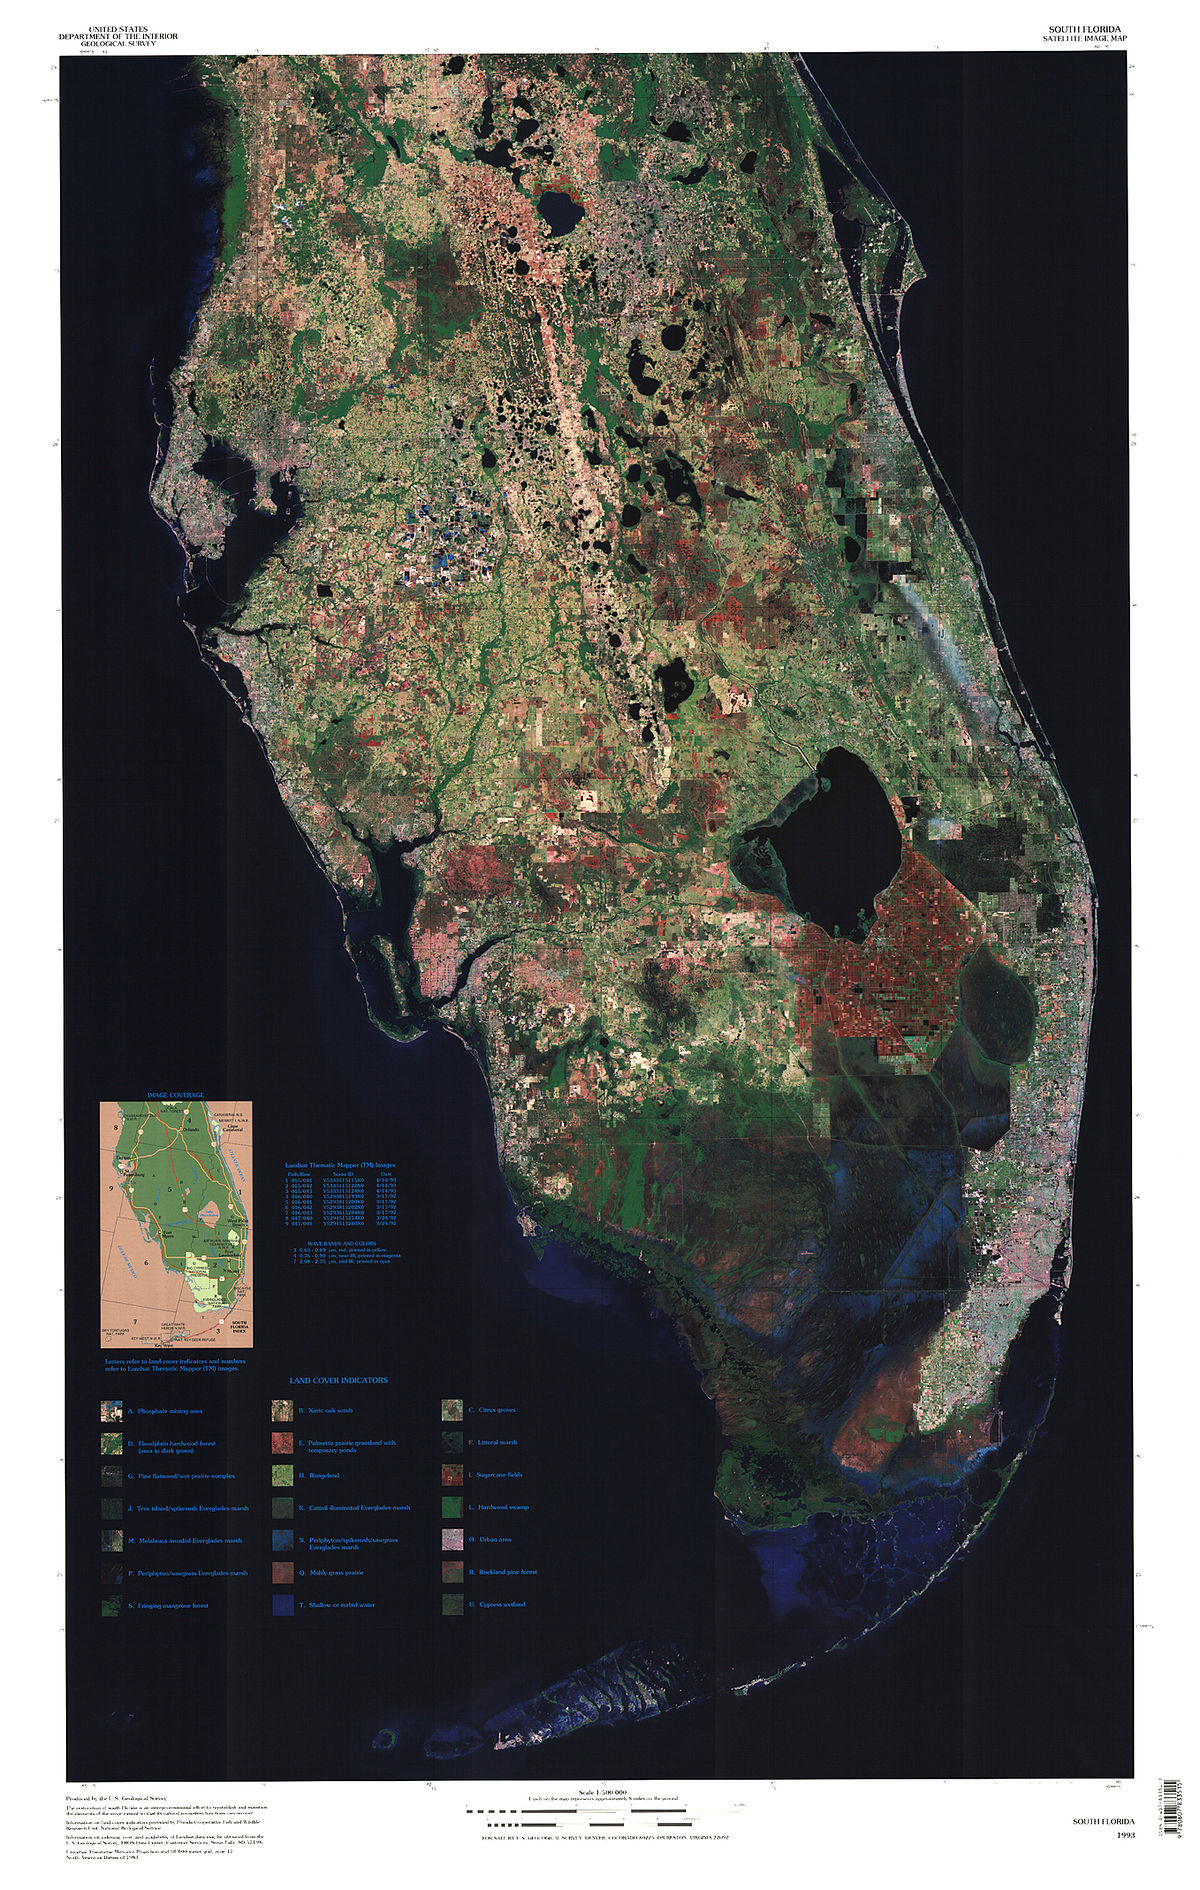 1200px-South_Florida_Satellite_Image_Map Satellite Florida Map on florida fiber optic map, florida heat index map, florida east coast map, florida doppler map, florida map with major highways, florida map zoom, manatee county florida zip code map, florida map auburndale fl in, florida interactive radar map, molino florida map, florida geology map, florida entertainment map, florida technology map, florida map ocala fl, florida media markets map, florida telephone map, florida everglades view from space, florida gazetteer, florida cable tv map, florida energy map,